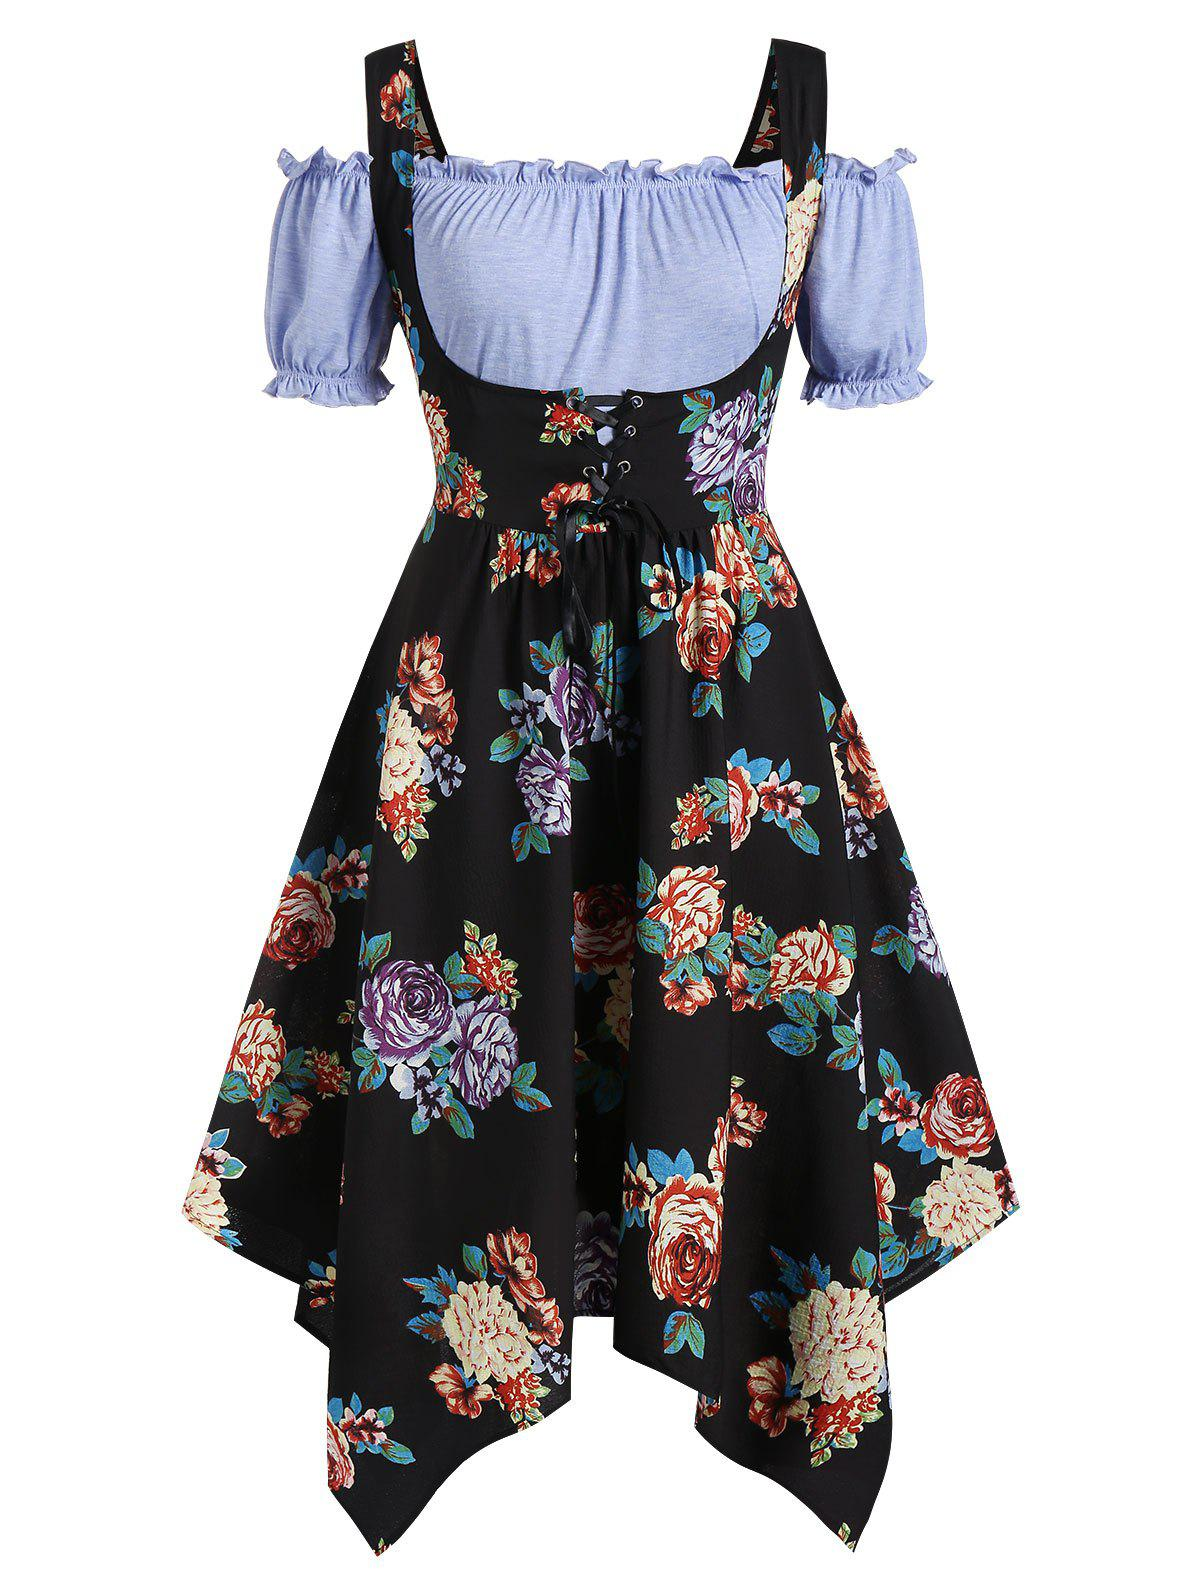 Fancy Plus Size Handkerchief Floral Dress With Off Shoulder Blouse Twinset